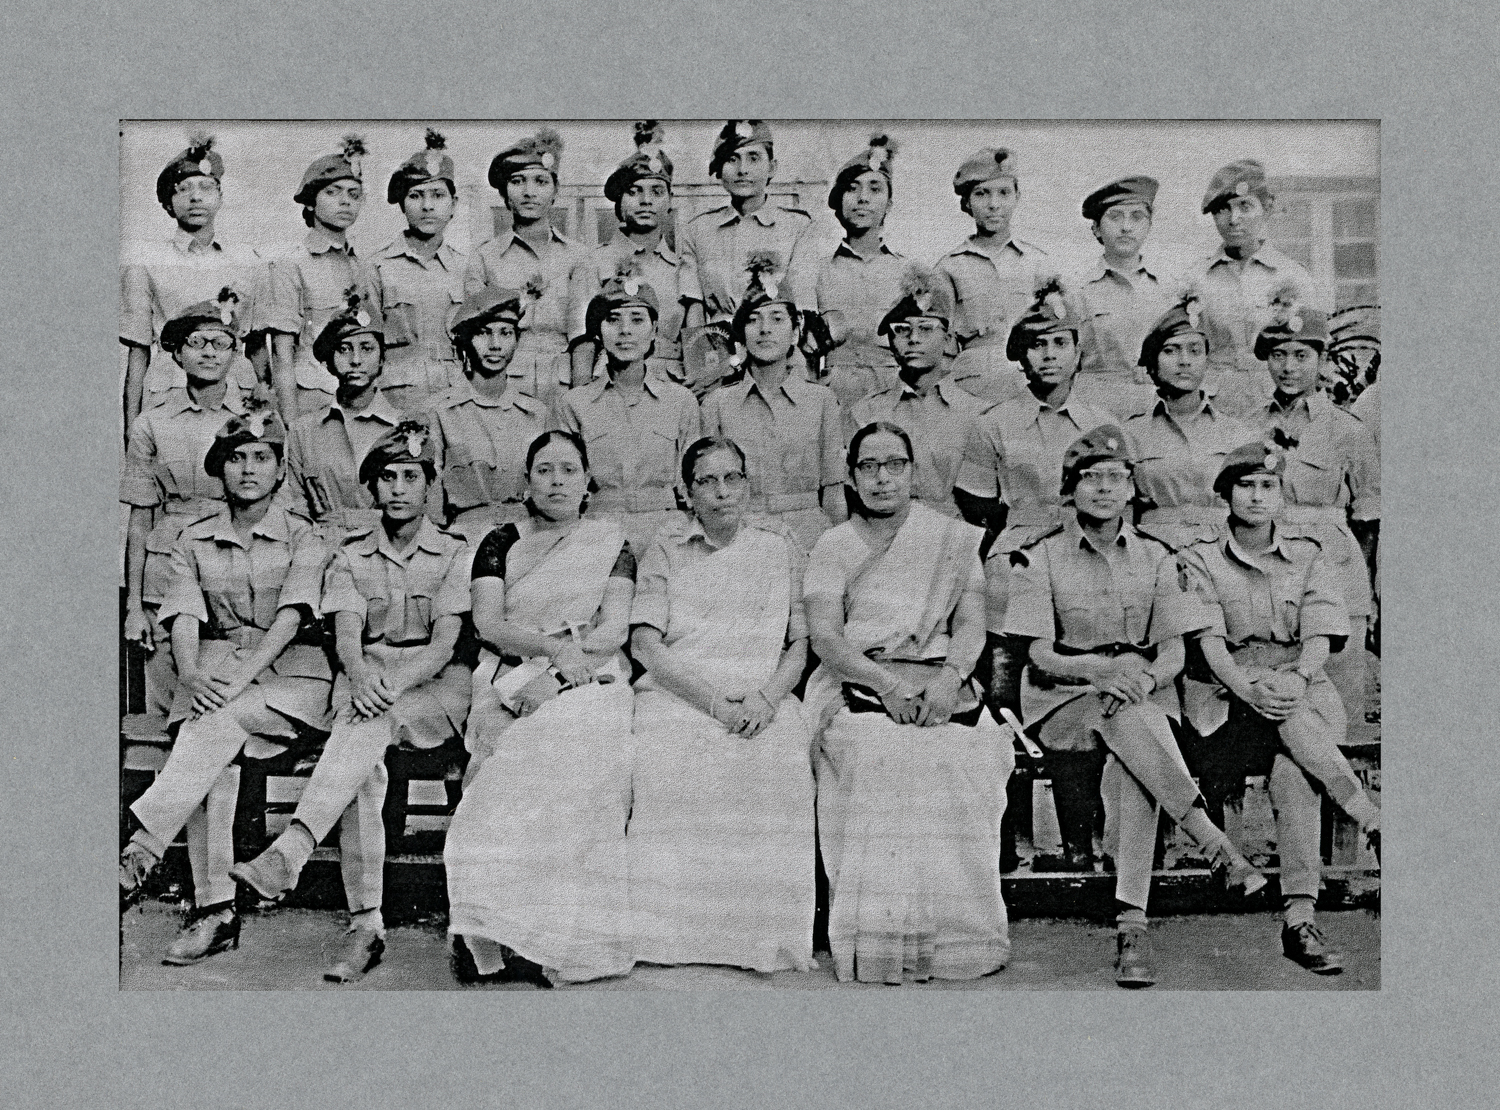 Victoria College, Calcutta, India c.1972